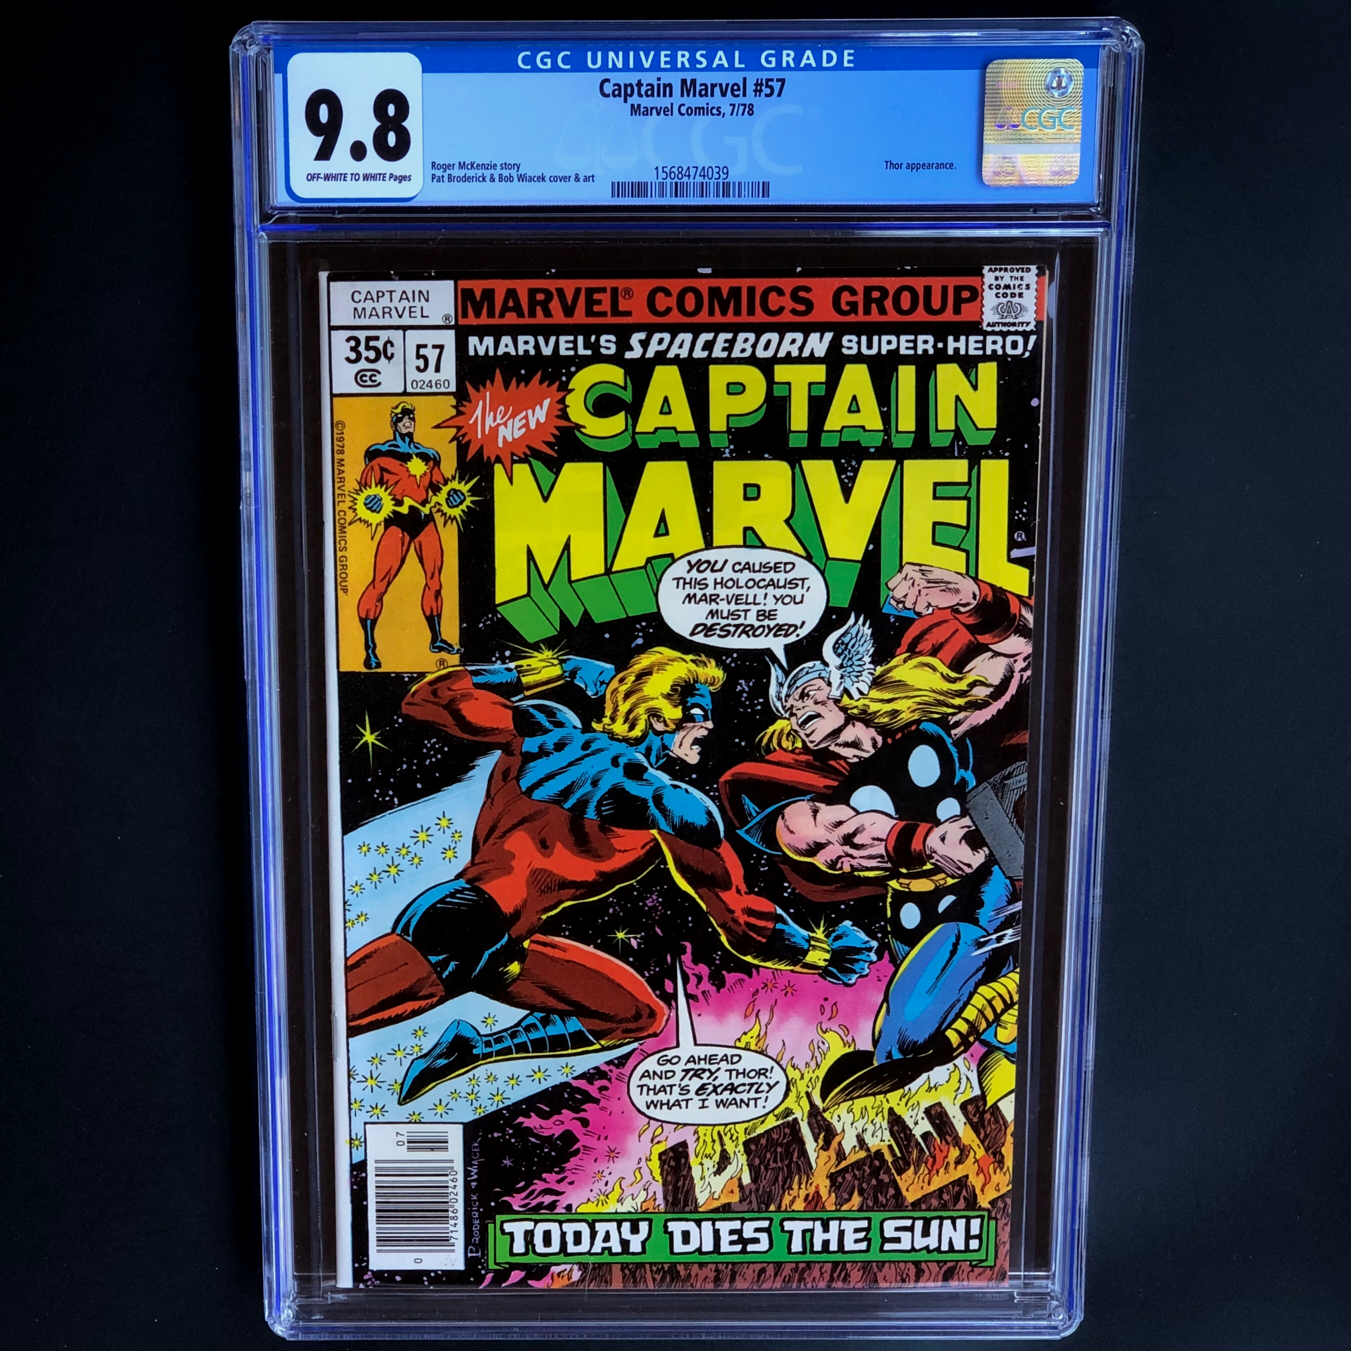 CAPTAIN MARVEL #57 (1978) ? CGC 9.8 ? SCARCE - 1 OF ONLY 35 THOR BATTLE